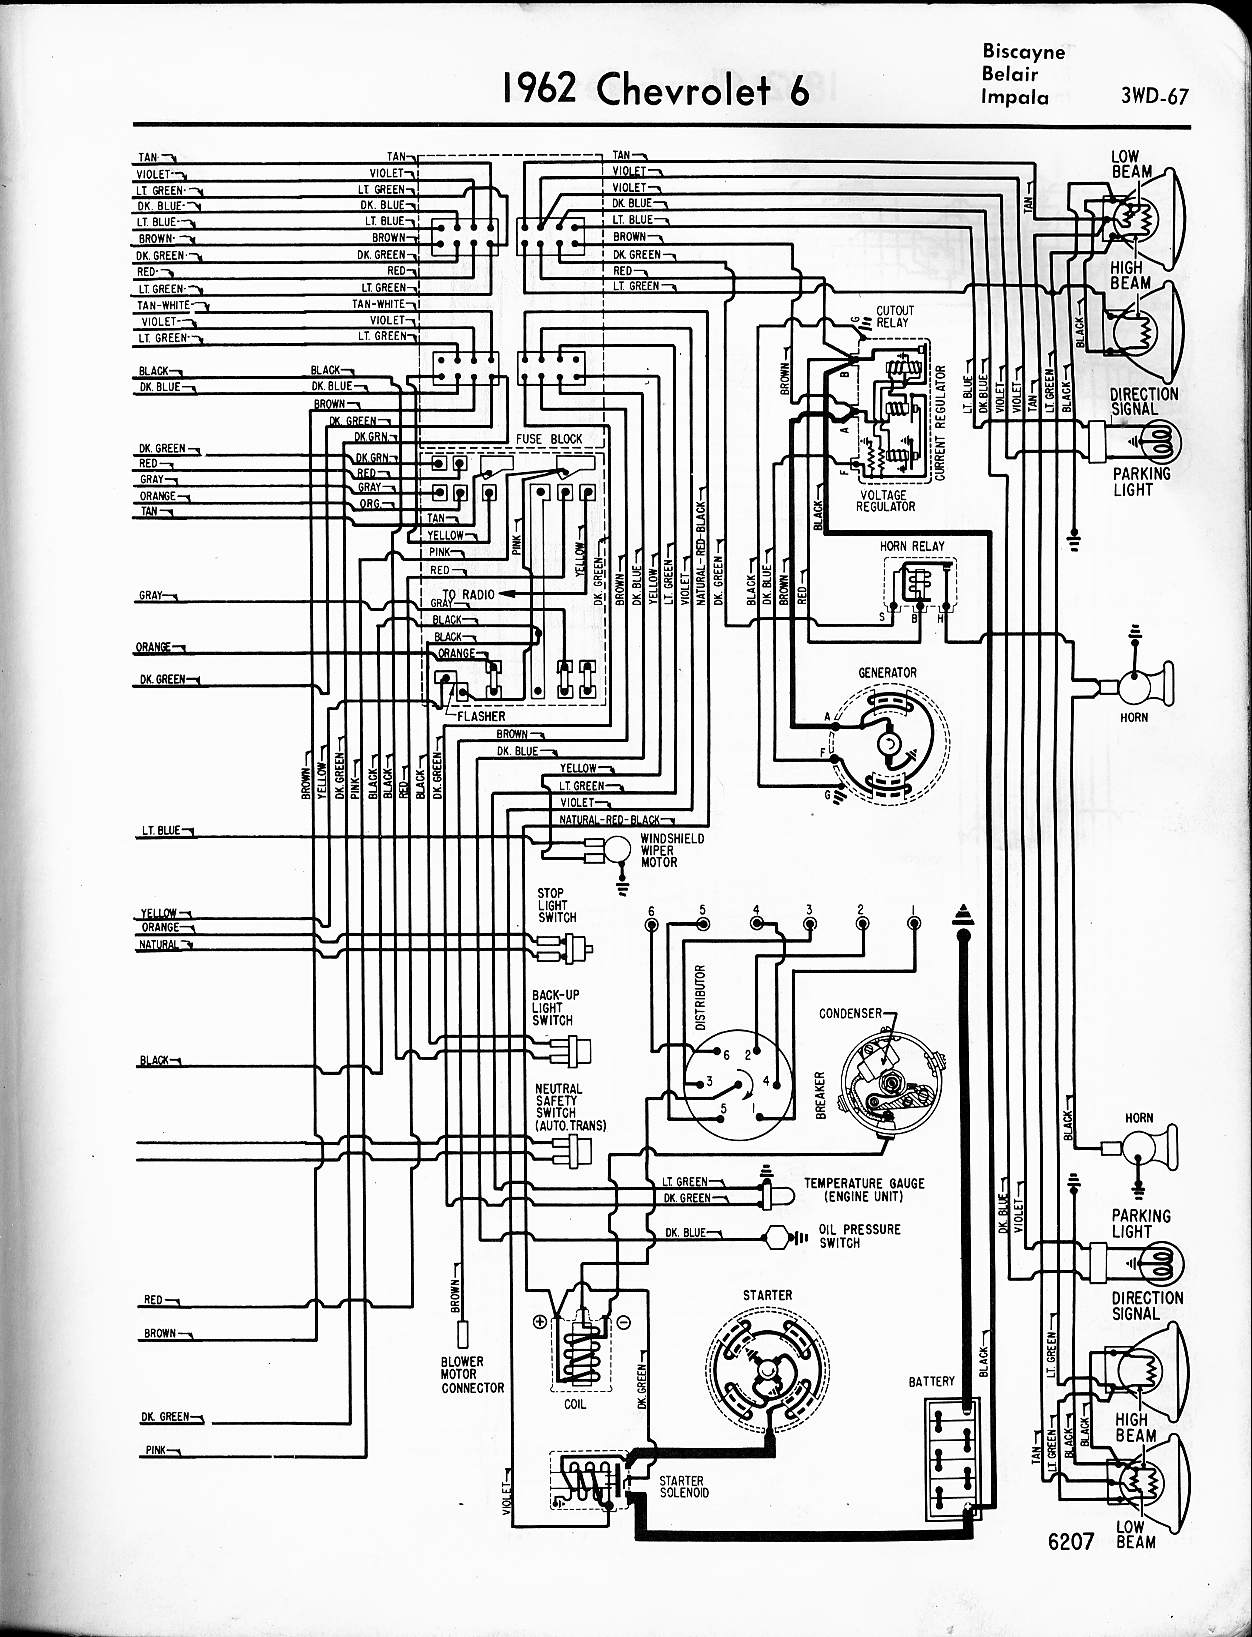 1964 Impala Wiper Wiring Diagram List Of Schematic Circuit 2kd Alternator 1962 Chevy Motor Data Schema Rh Site De Joueurs Com